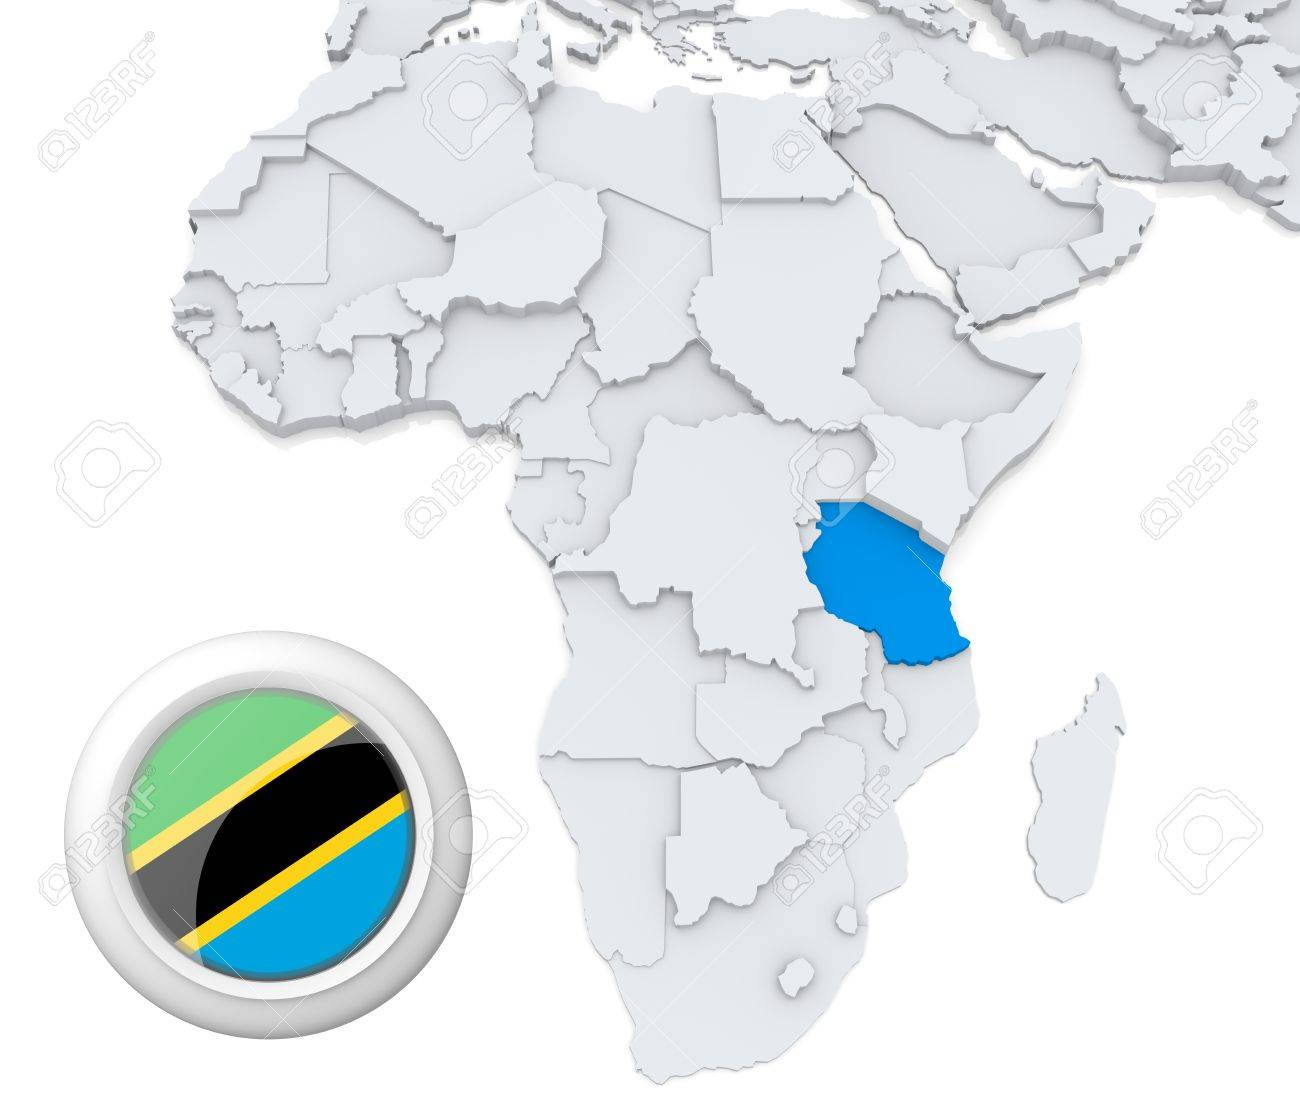 3D Modeled Map Of Africa With Highlighted State Of Tanzania With